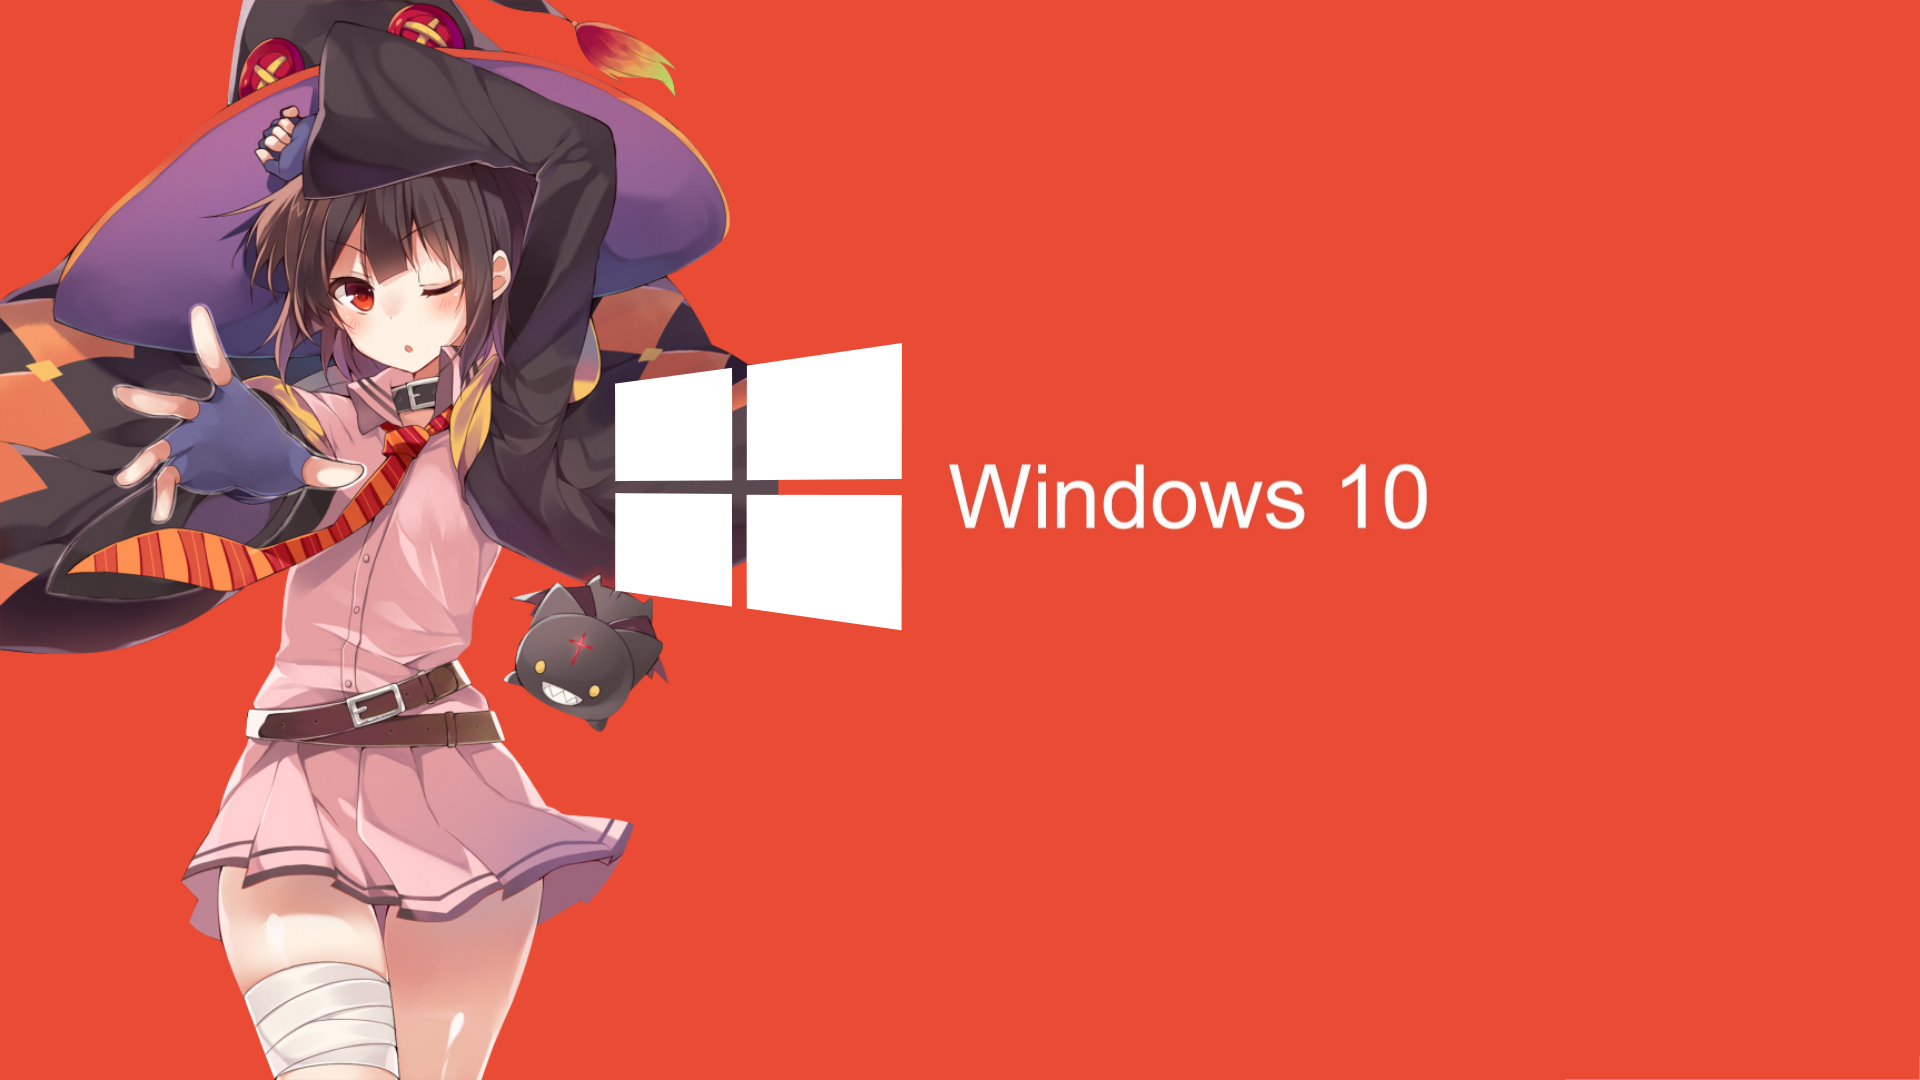 Windows 10 Wallpaper Anime Mywallpapers Site Windows 10 Anime Wallpaper Windows 10